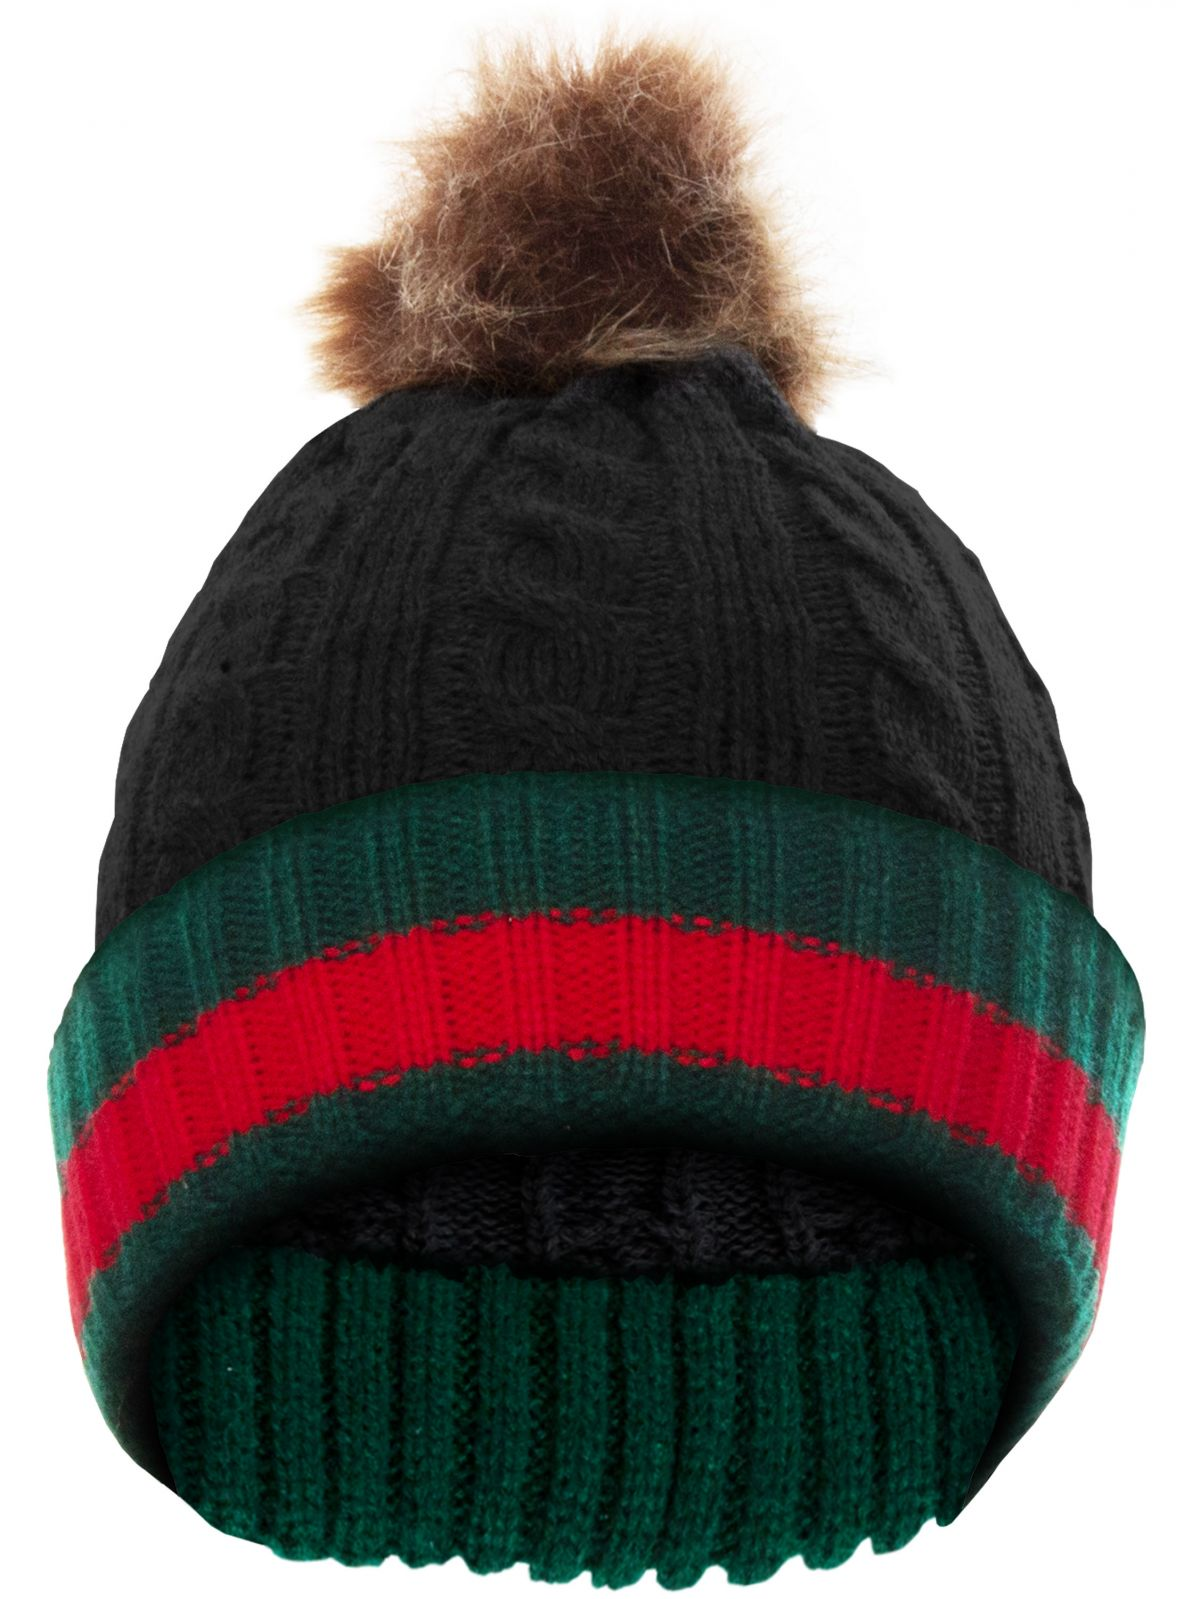 Accessories   Mens Winter Knitted Striped Beanie